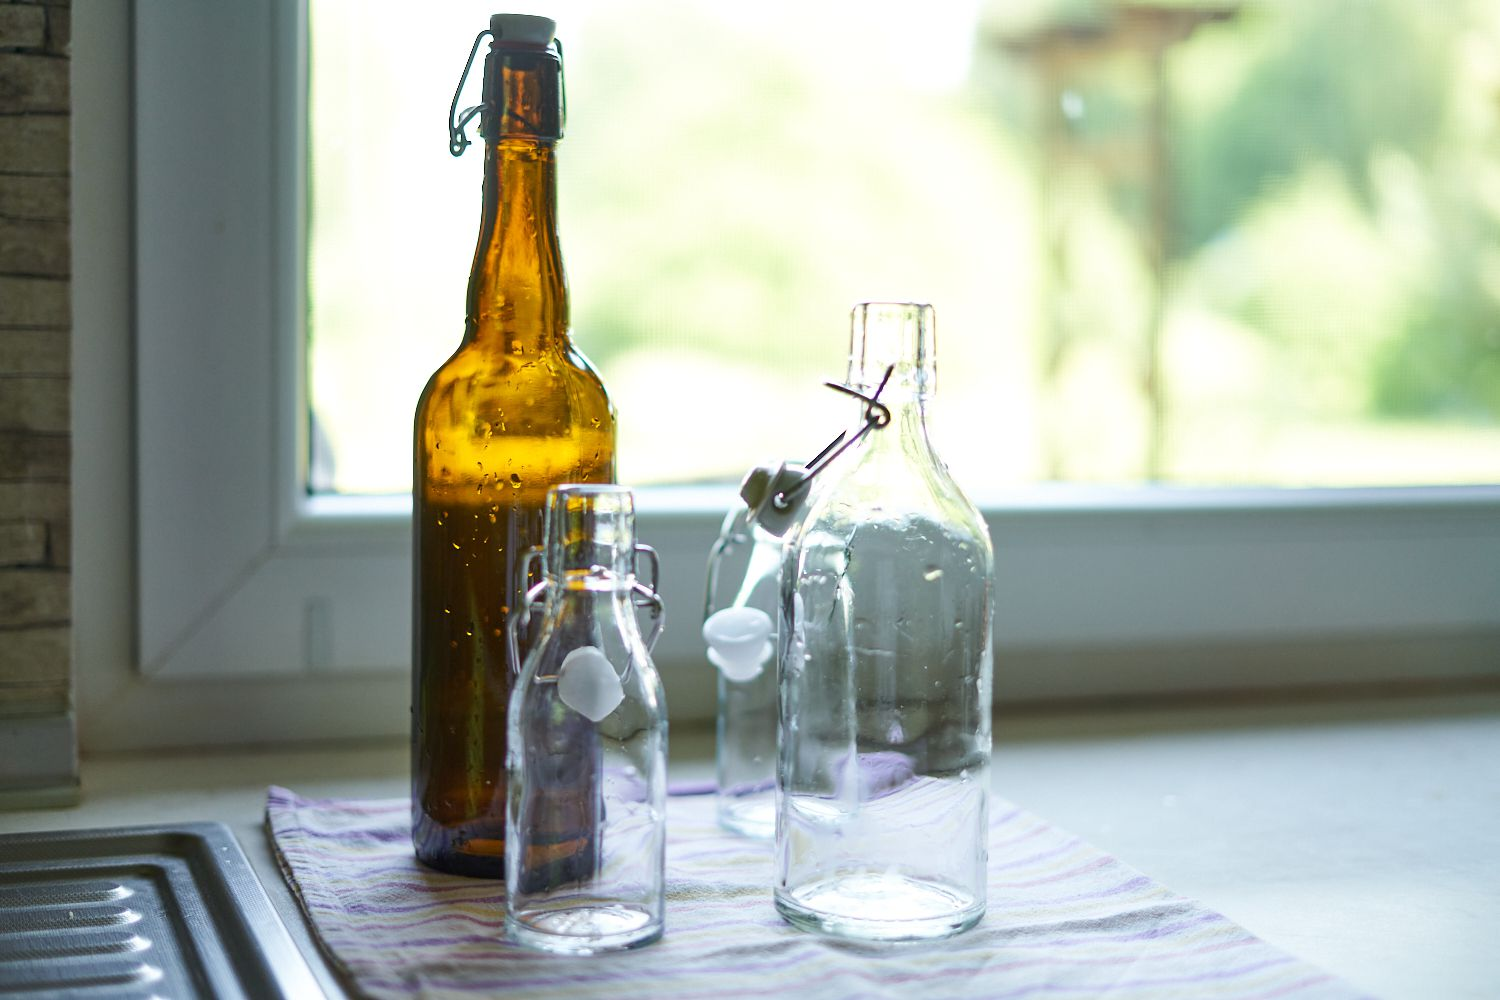 various sized glass flip-top bottles recently cleaned next to kitchen sink